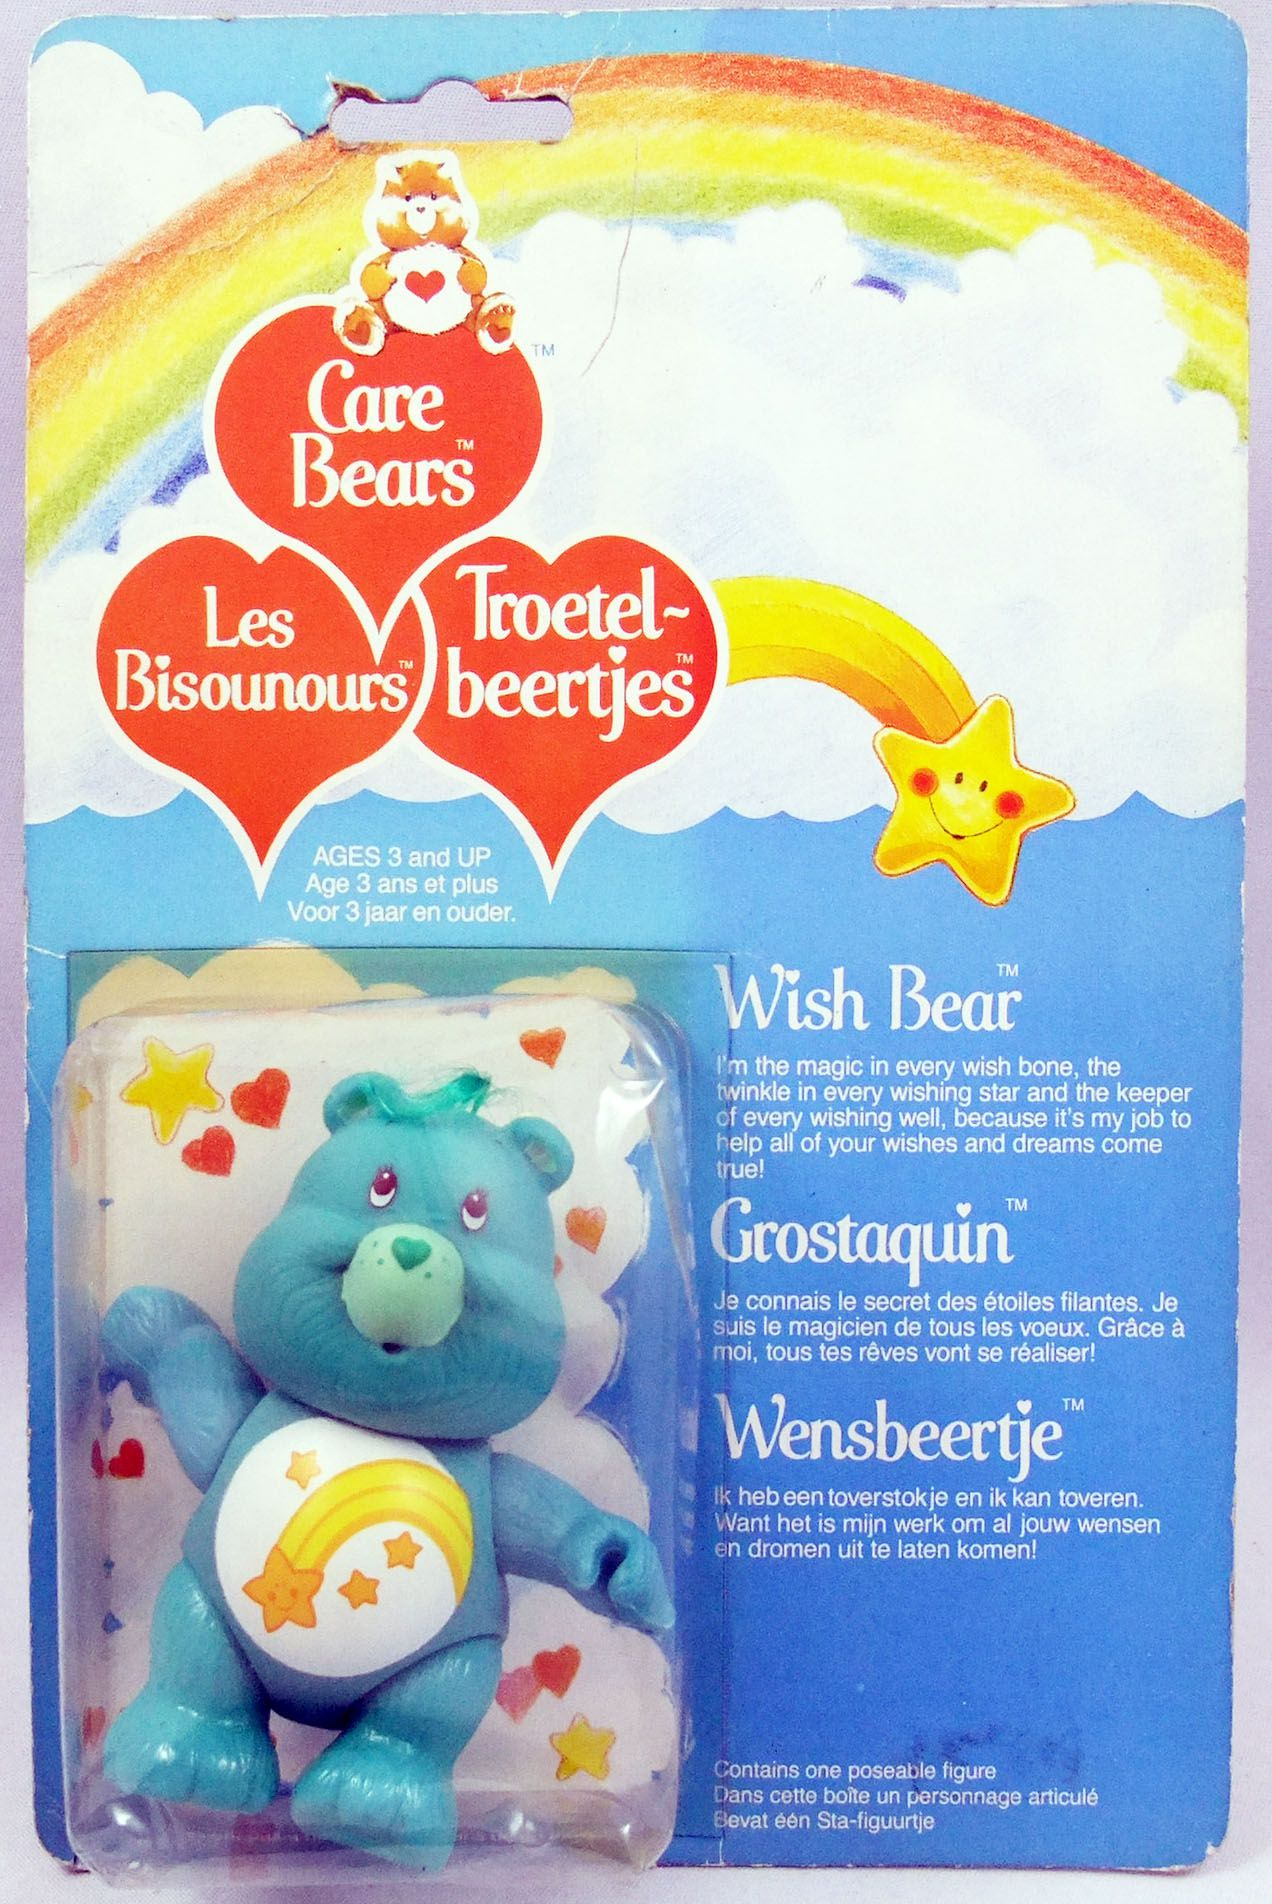 Care Bears - Kenner action figure - Wish Bear